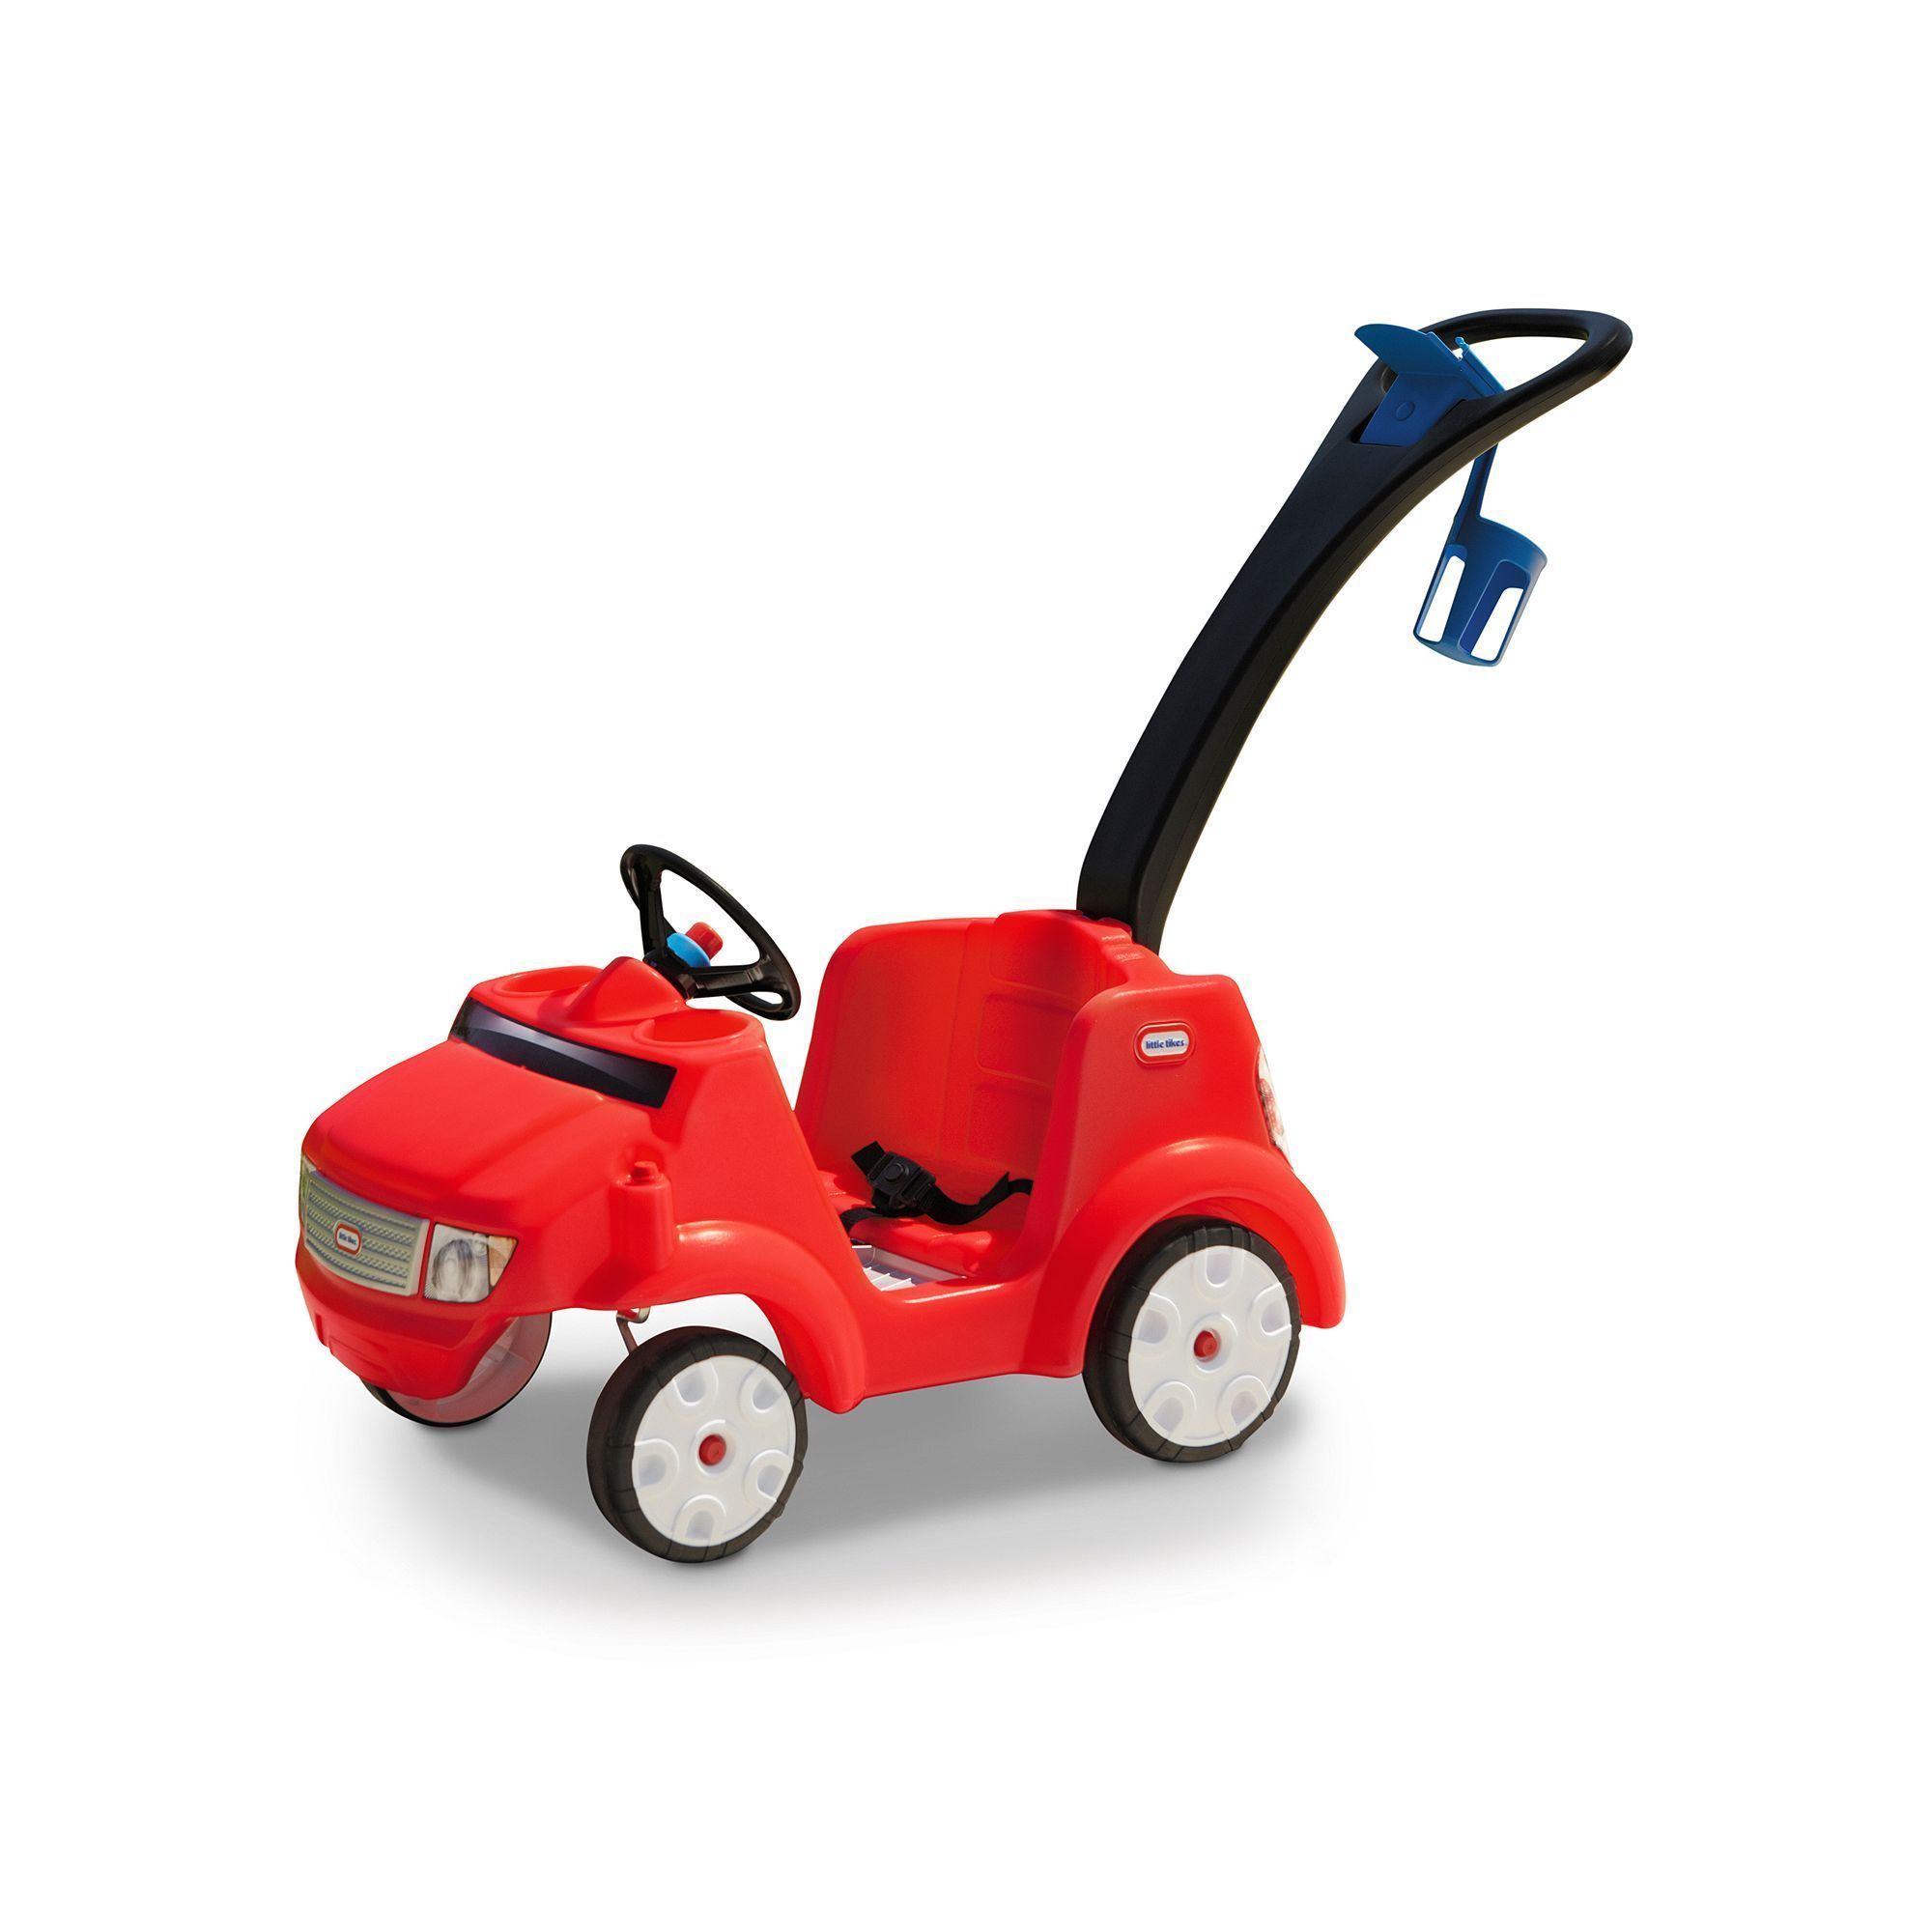 Little Tikes Quiet Drive Buggy Little tikes, Ride on